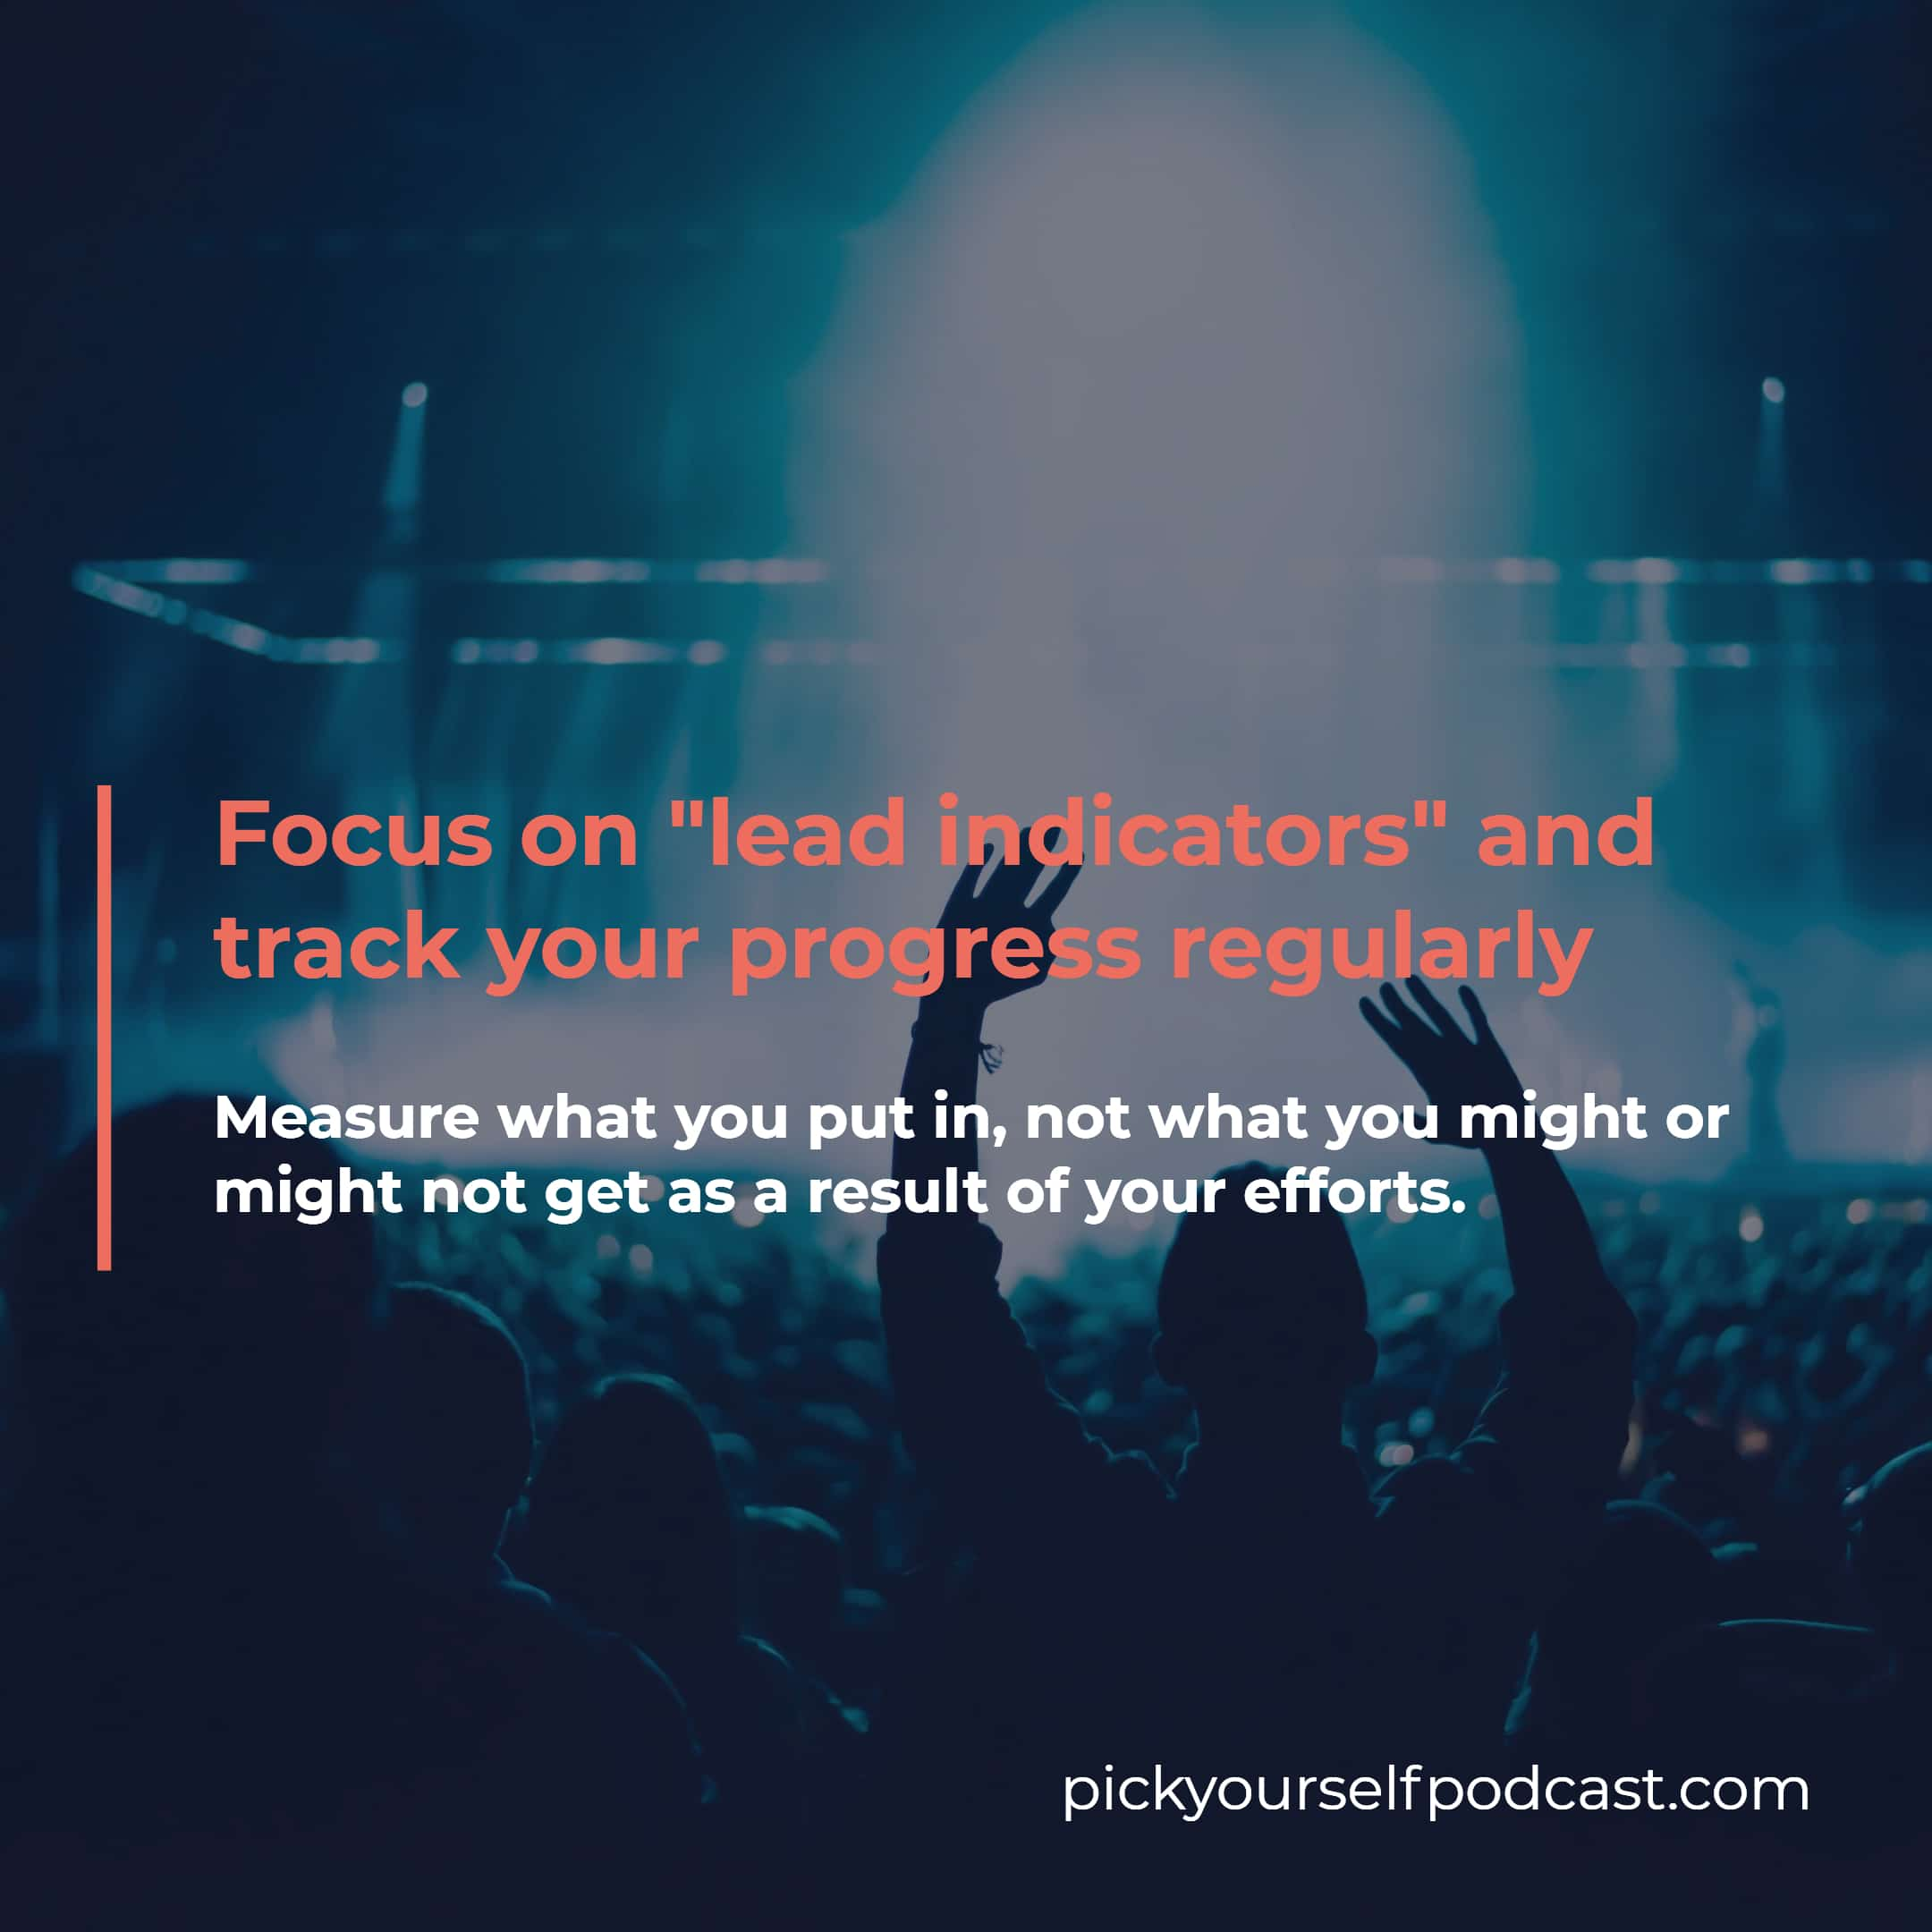 Goal-setting for music producers and DJs visual 02. It says you should focus on lead indicators and measure your progress regularly.